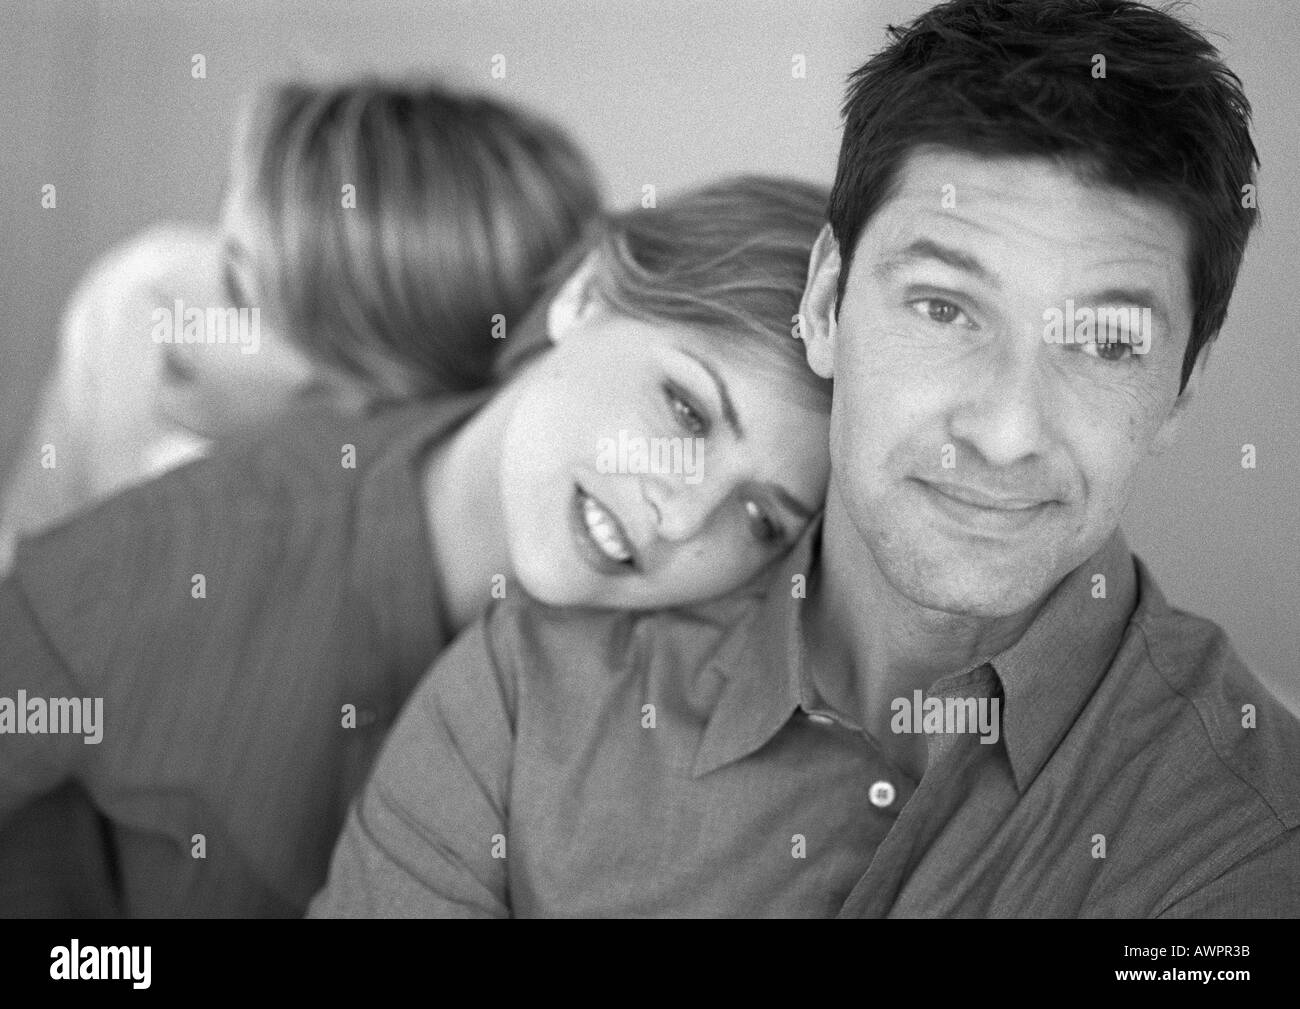 Woman leaning on man's shoulder, second woman leaning on her shoulder, b&w - Stock Image